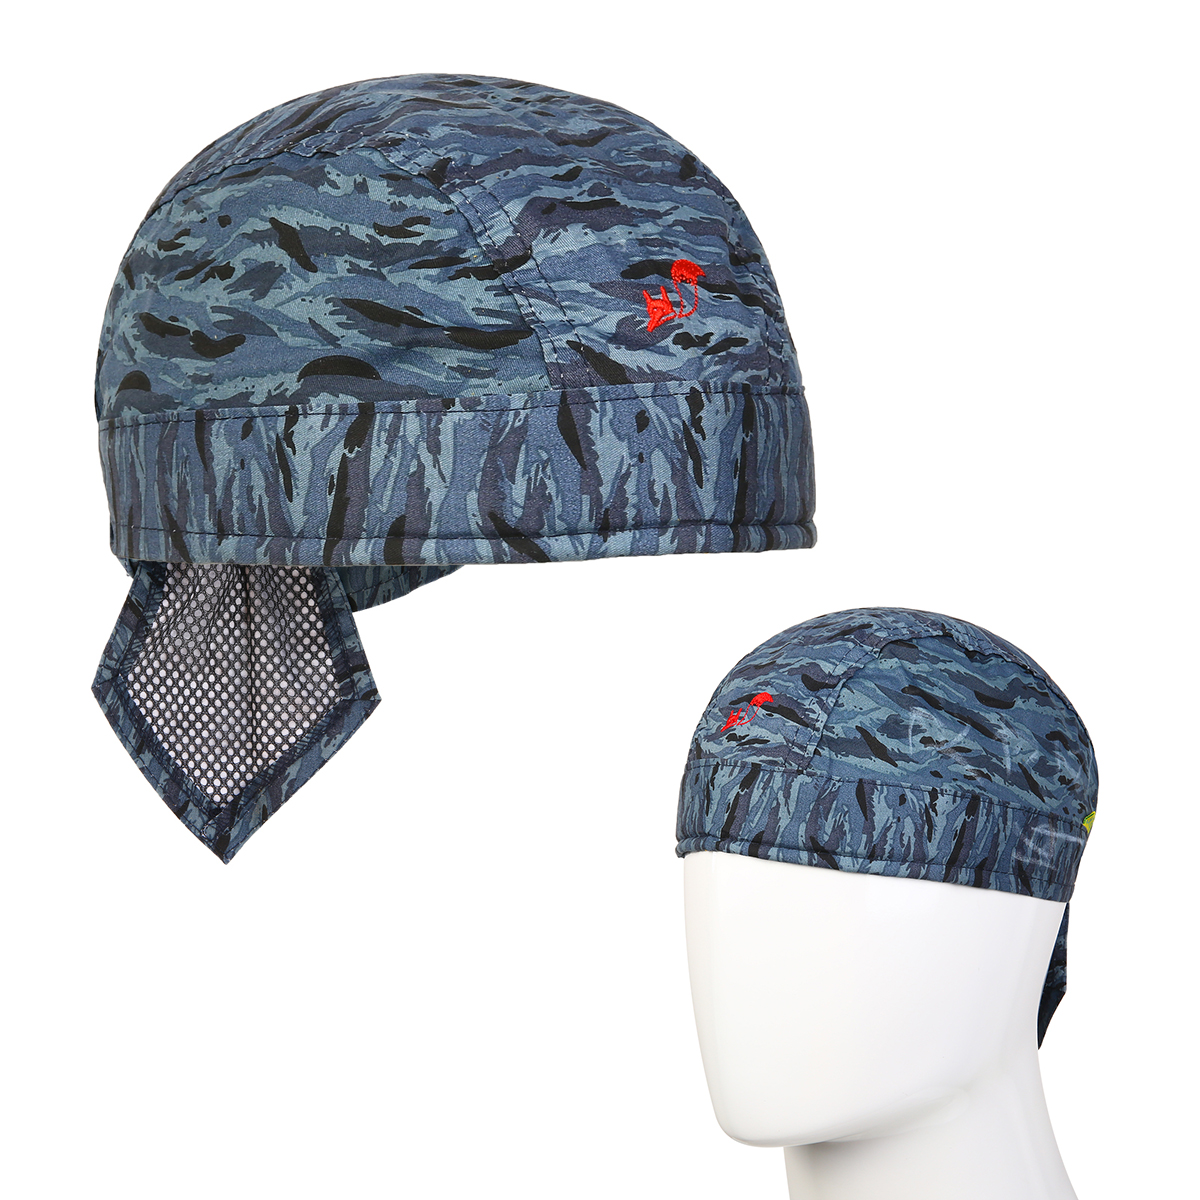 Oumij Welding Safety Cap,Flame-Resistant Welding Beanie,Washable Welding Hat,Head Protective,Bandana Type for Safety and Protection